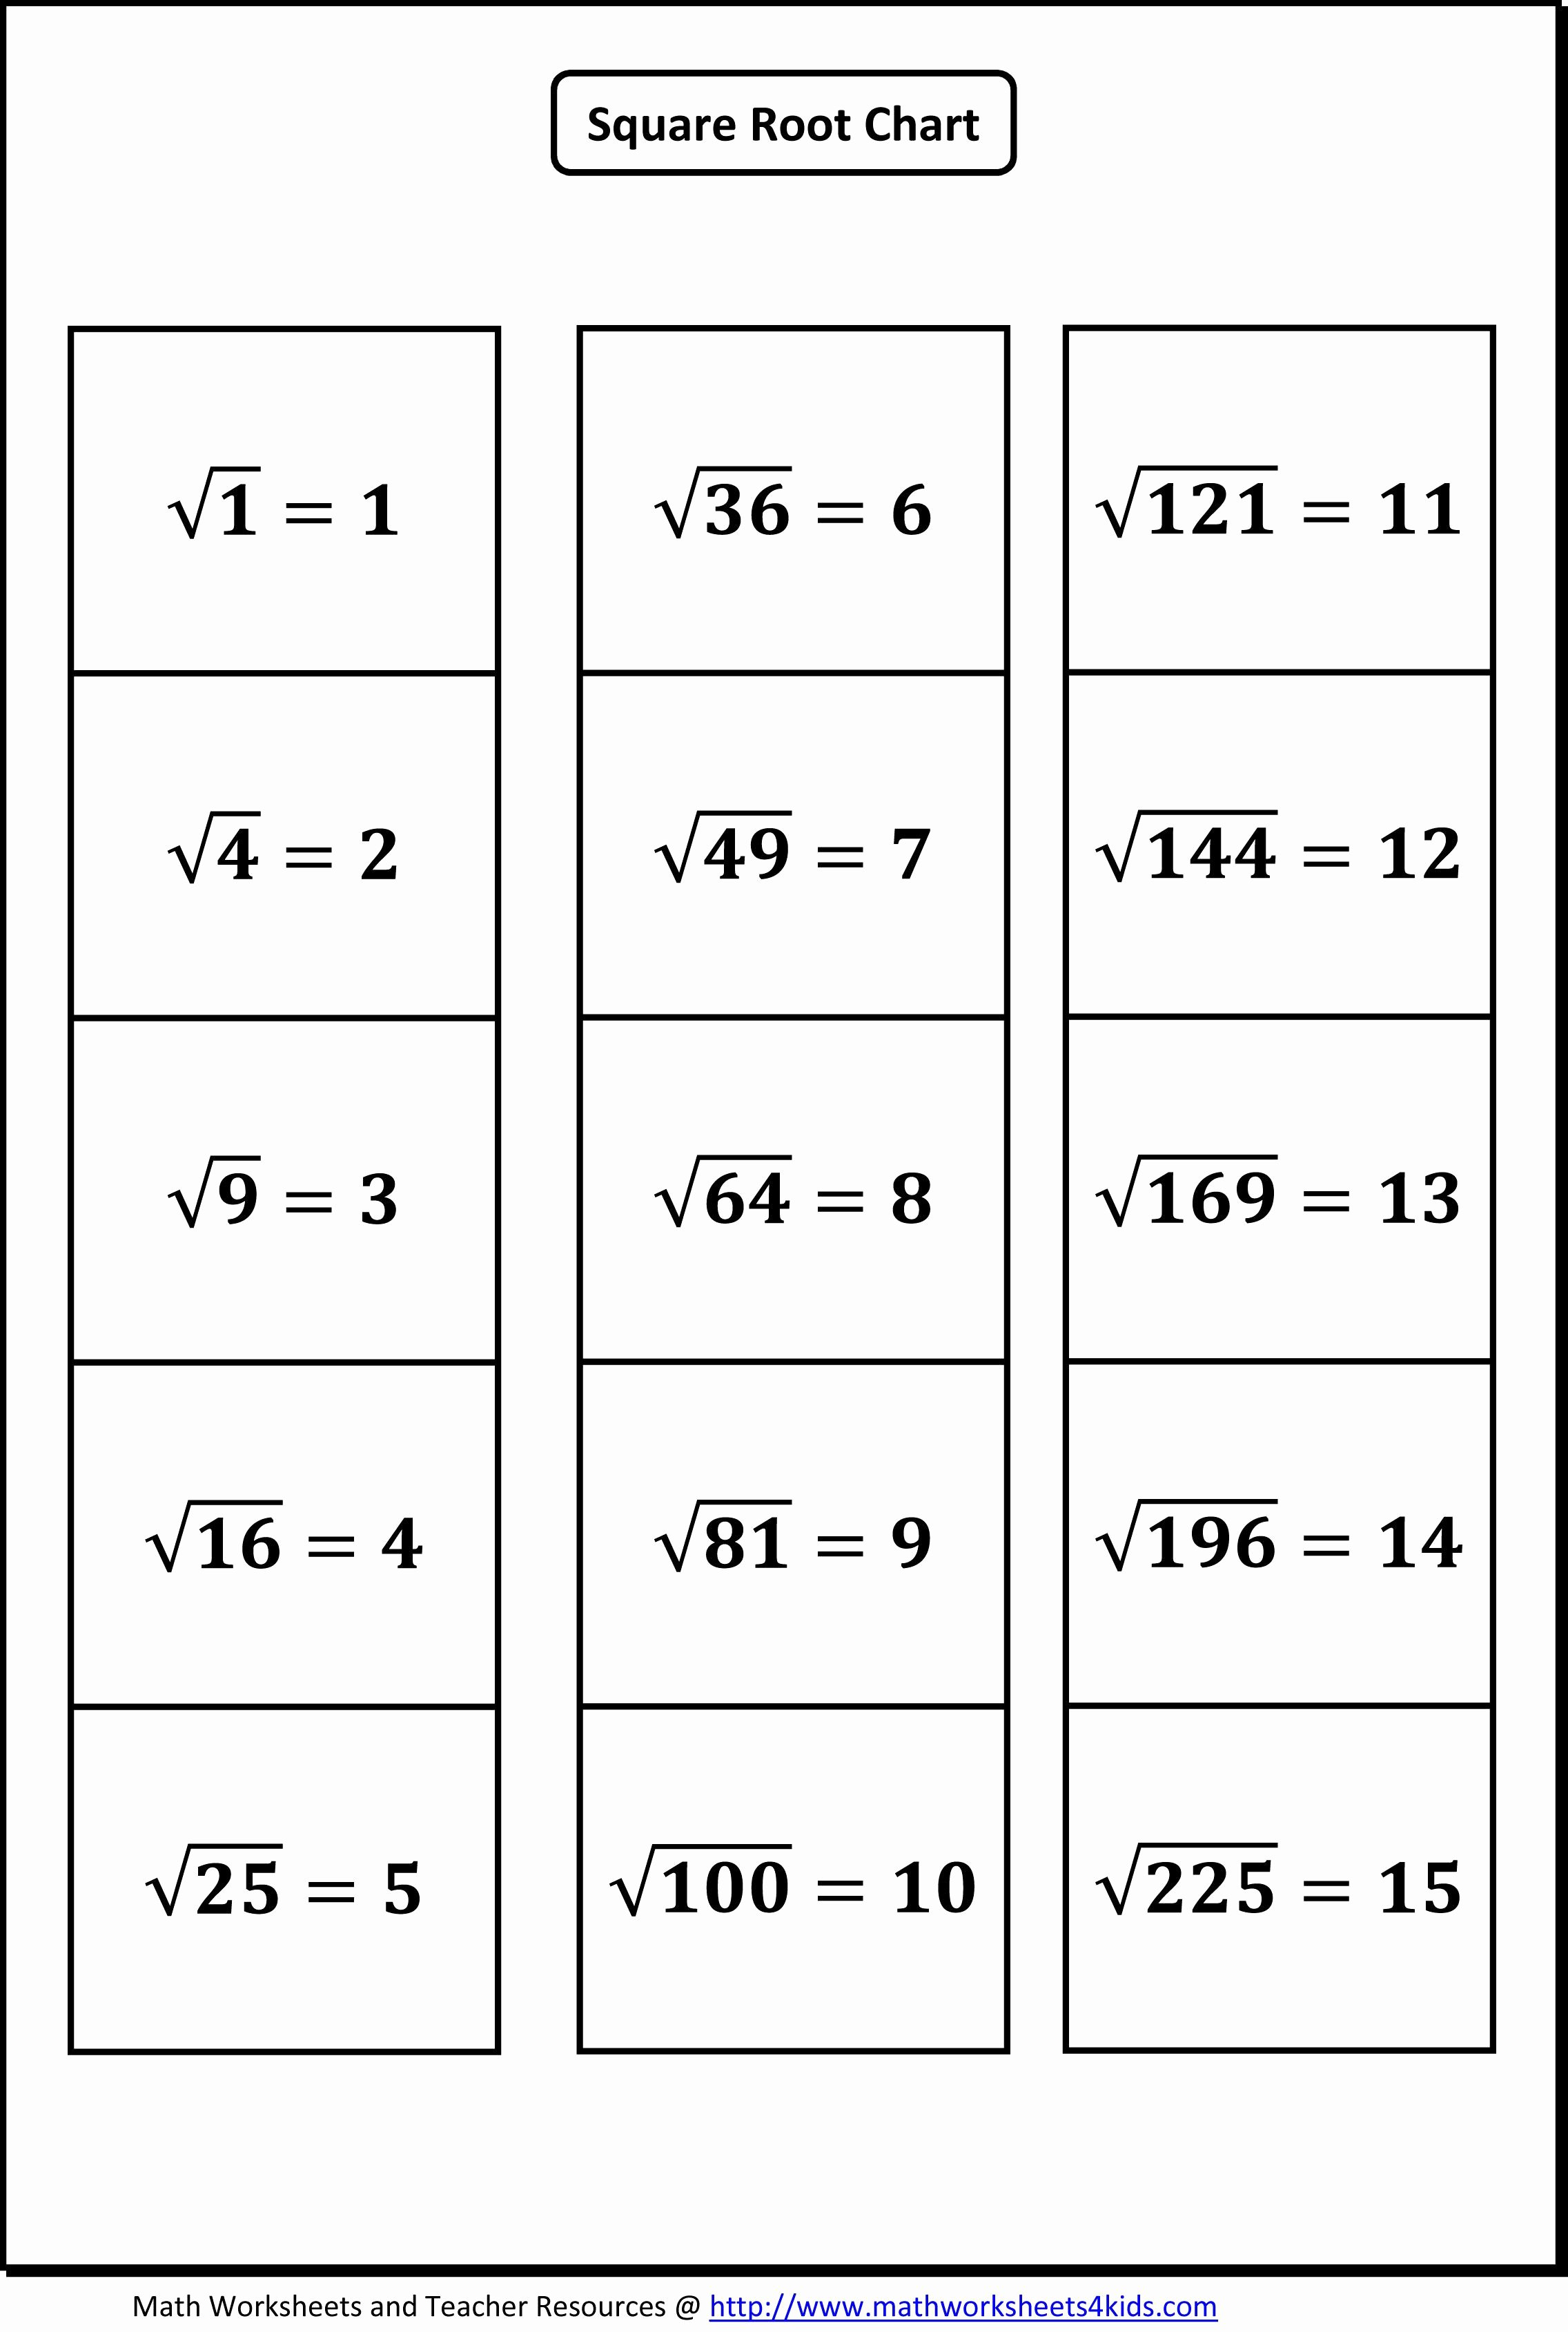 Square Root Worksheet Pdf Lovely Domain and Range Square Root Functions Worksheet